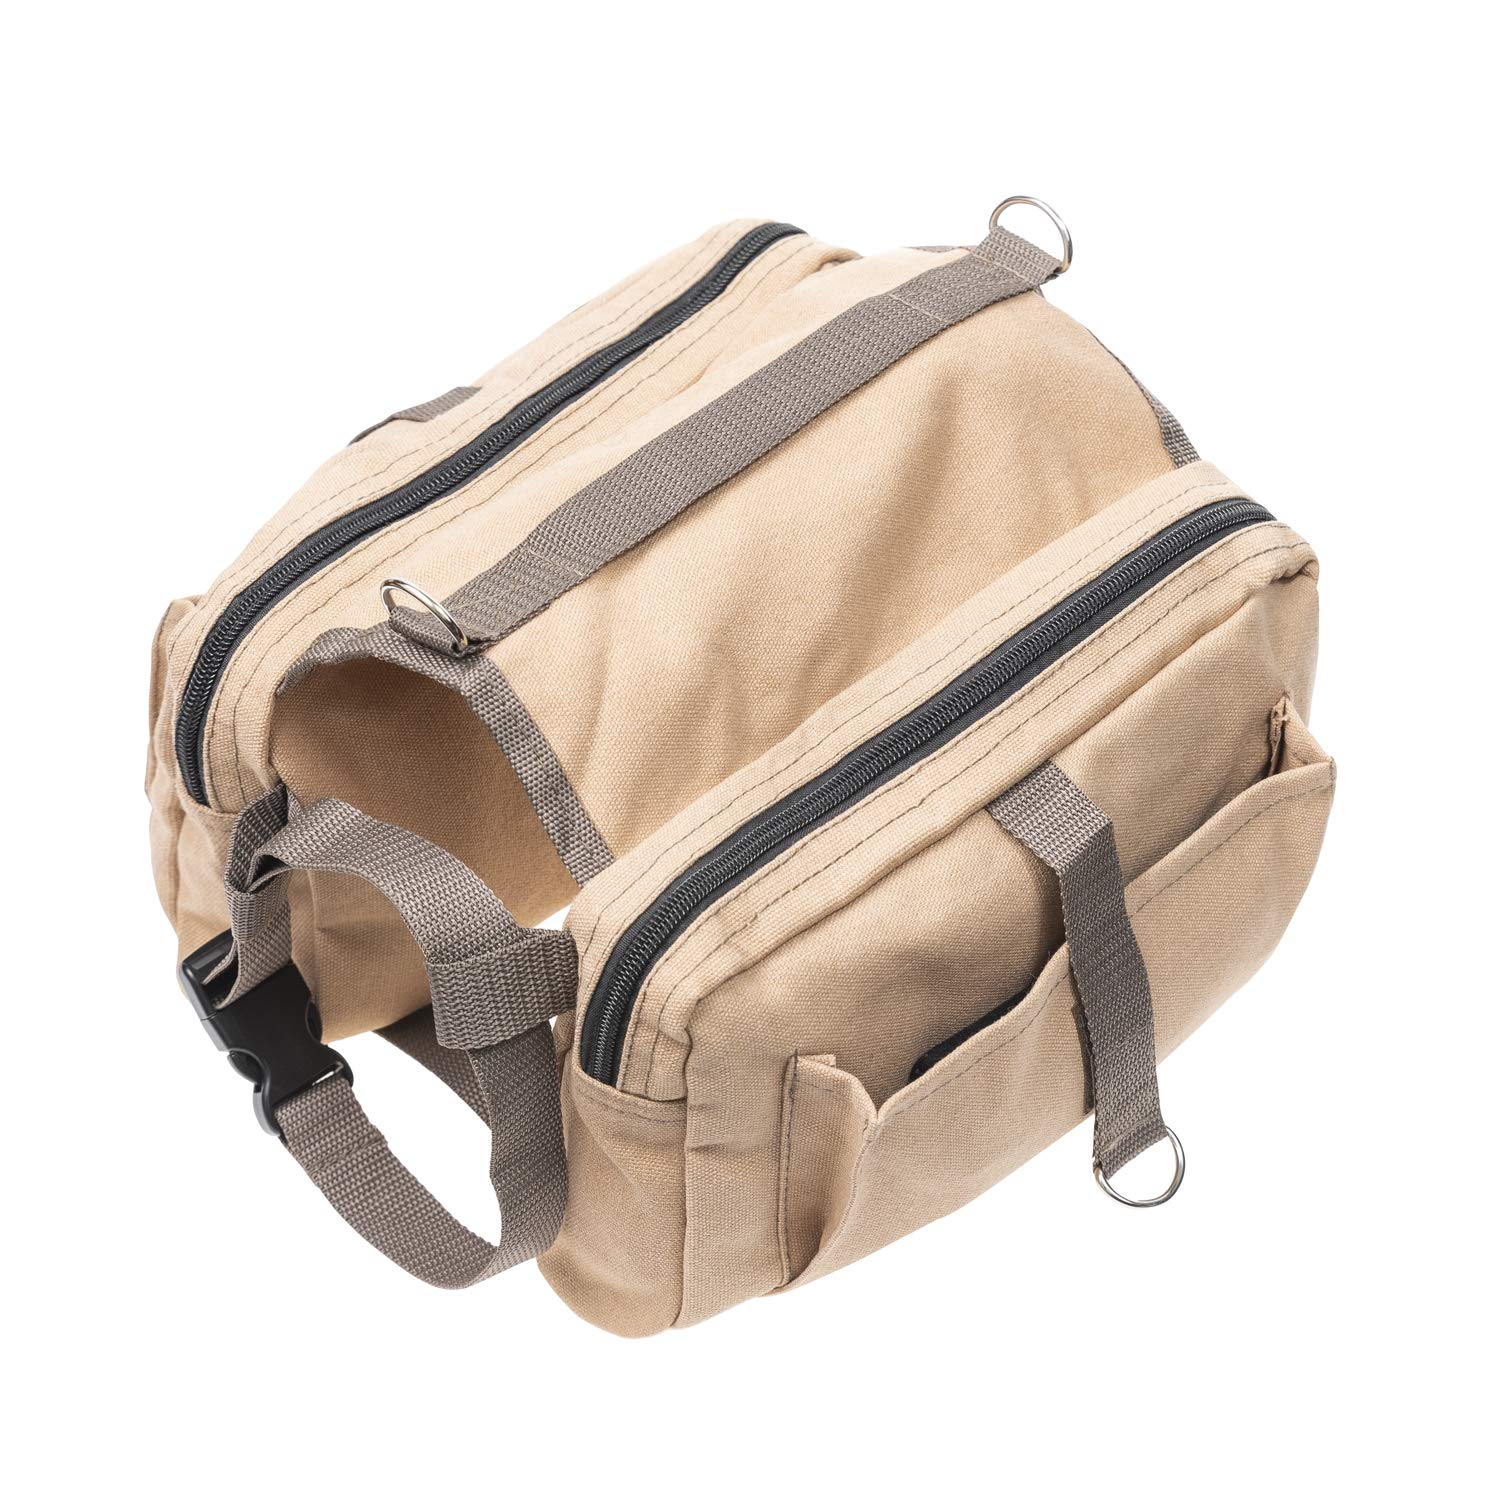 AEXYA Dog Backpack Lightweight - Hiking, Camping, Shopping, Urban Walking with Your pet - for Large Dogs by AEXYA